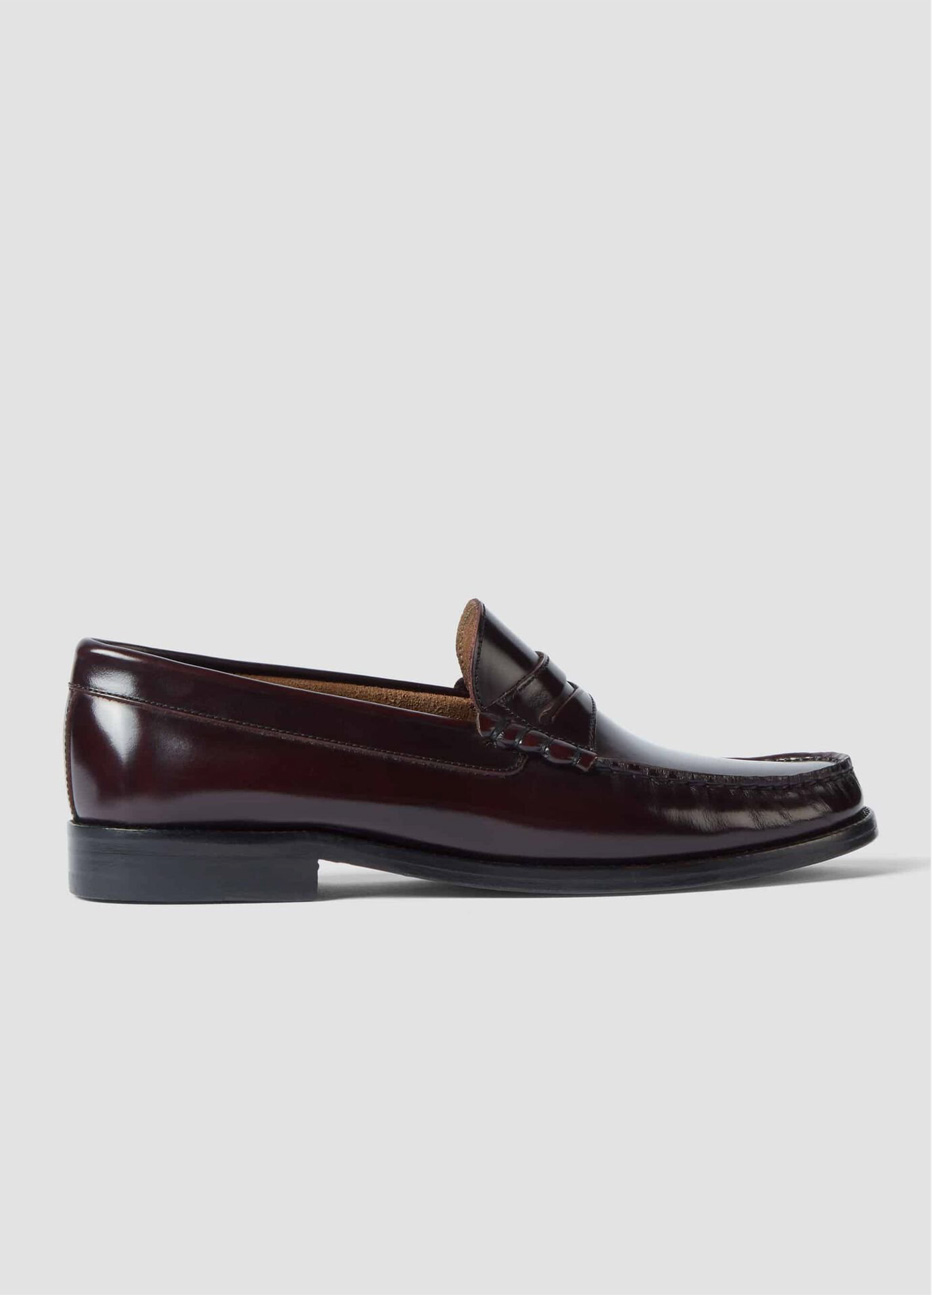 Hobbs women's leather loafers in black.